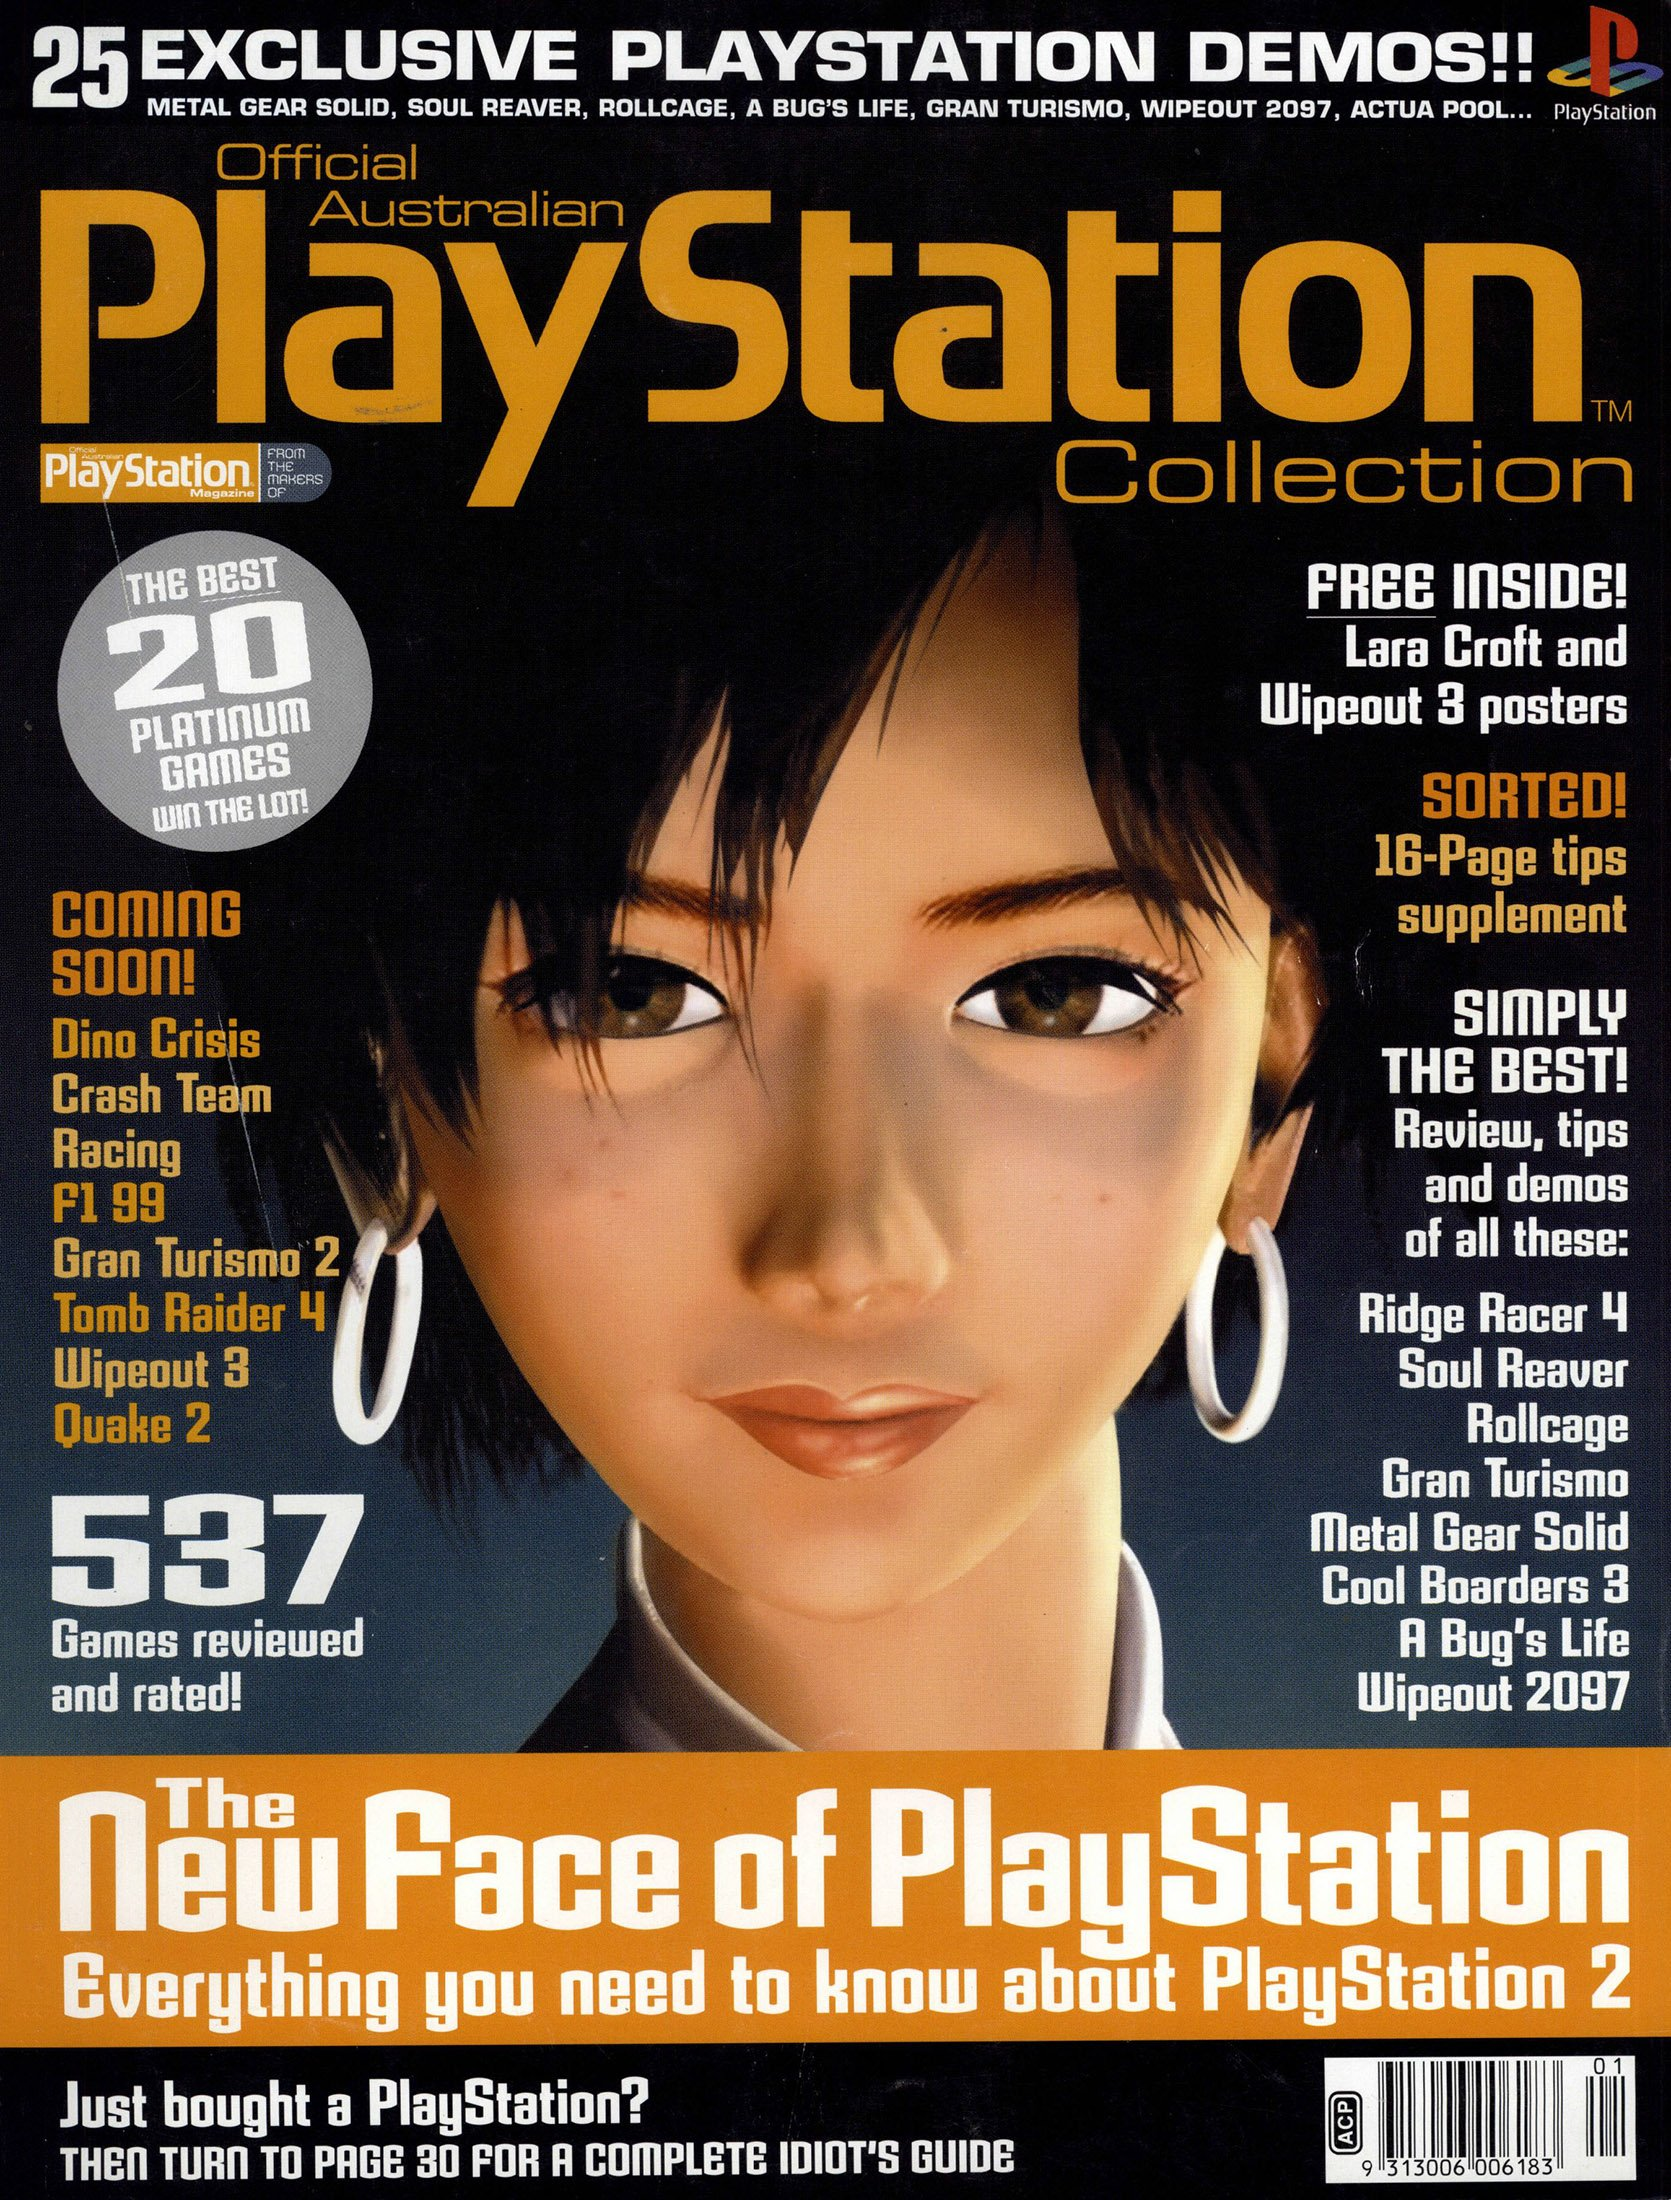 Official Australian PlayStation Magazine Collection (November 1999)